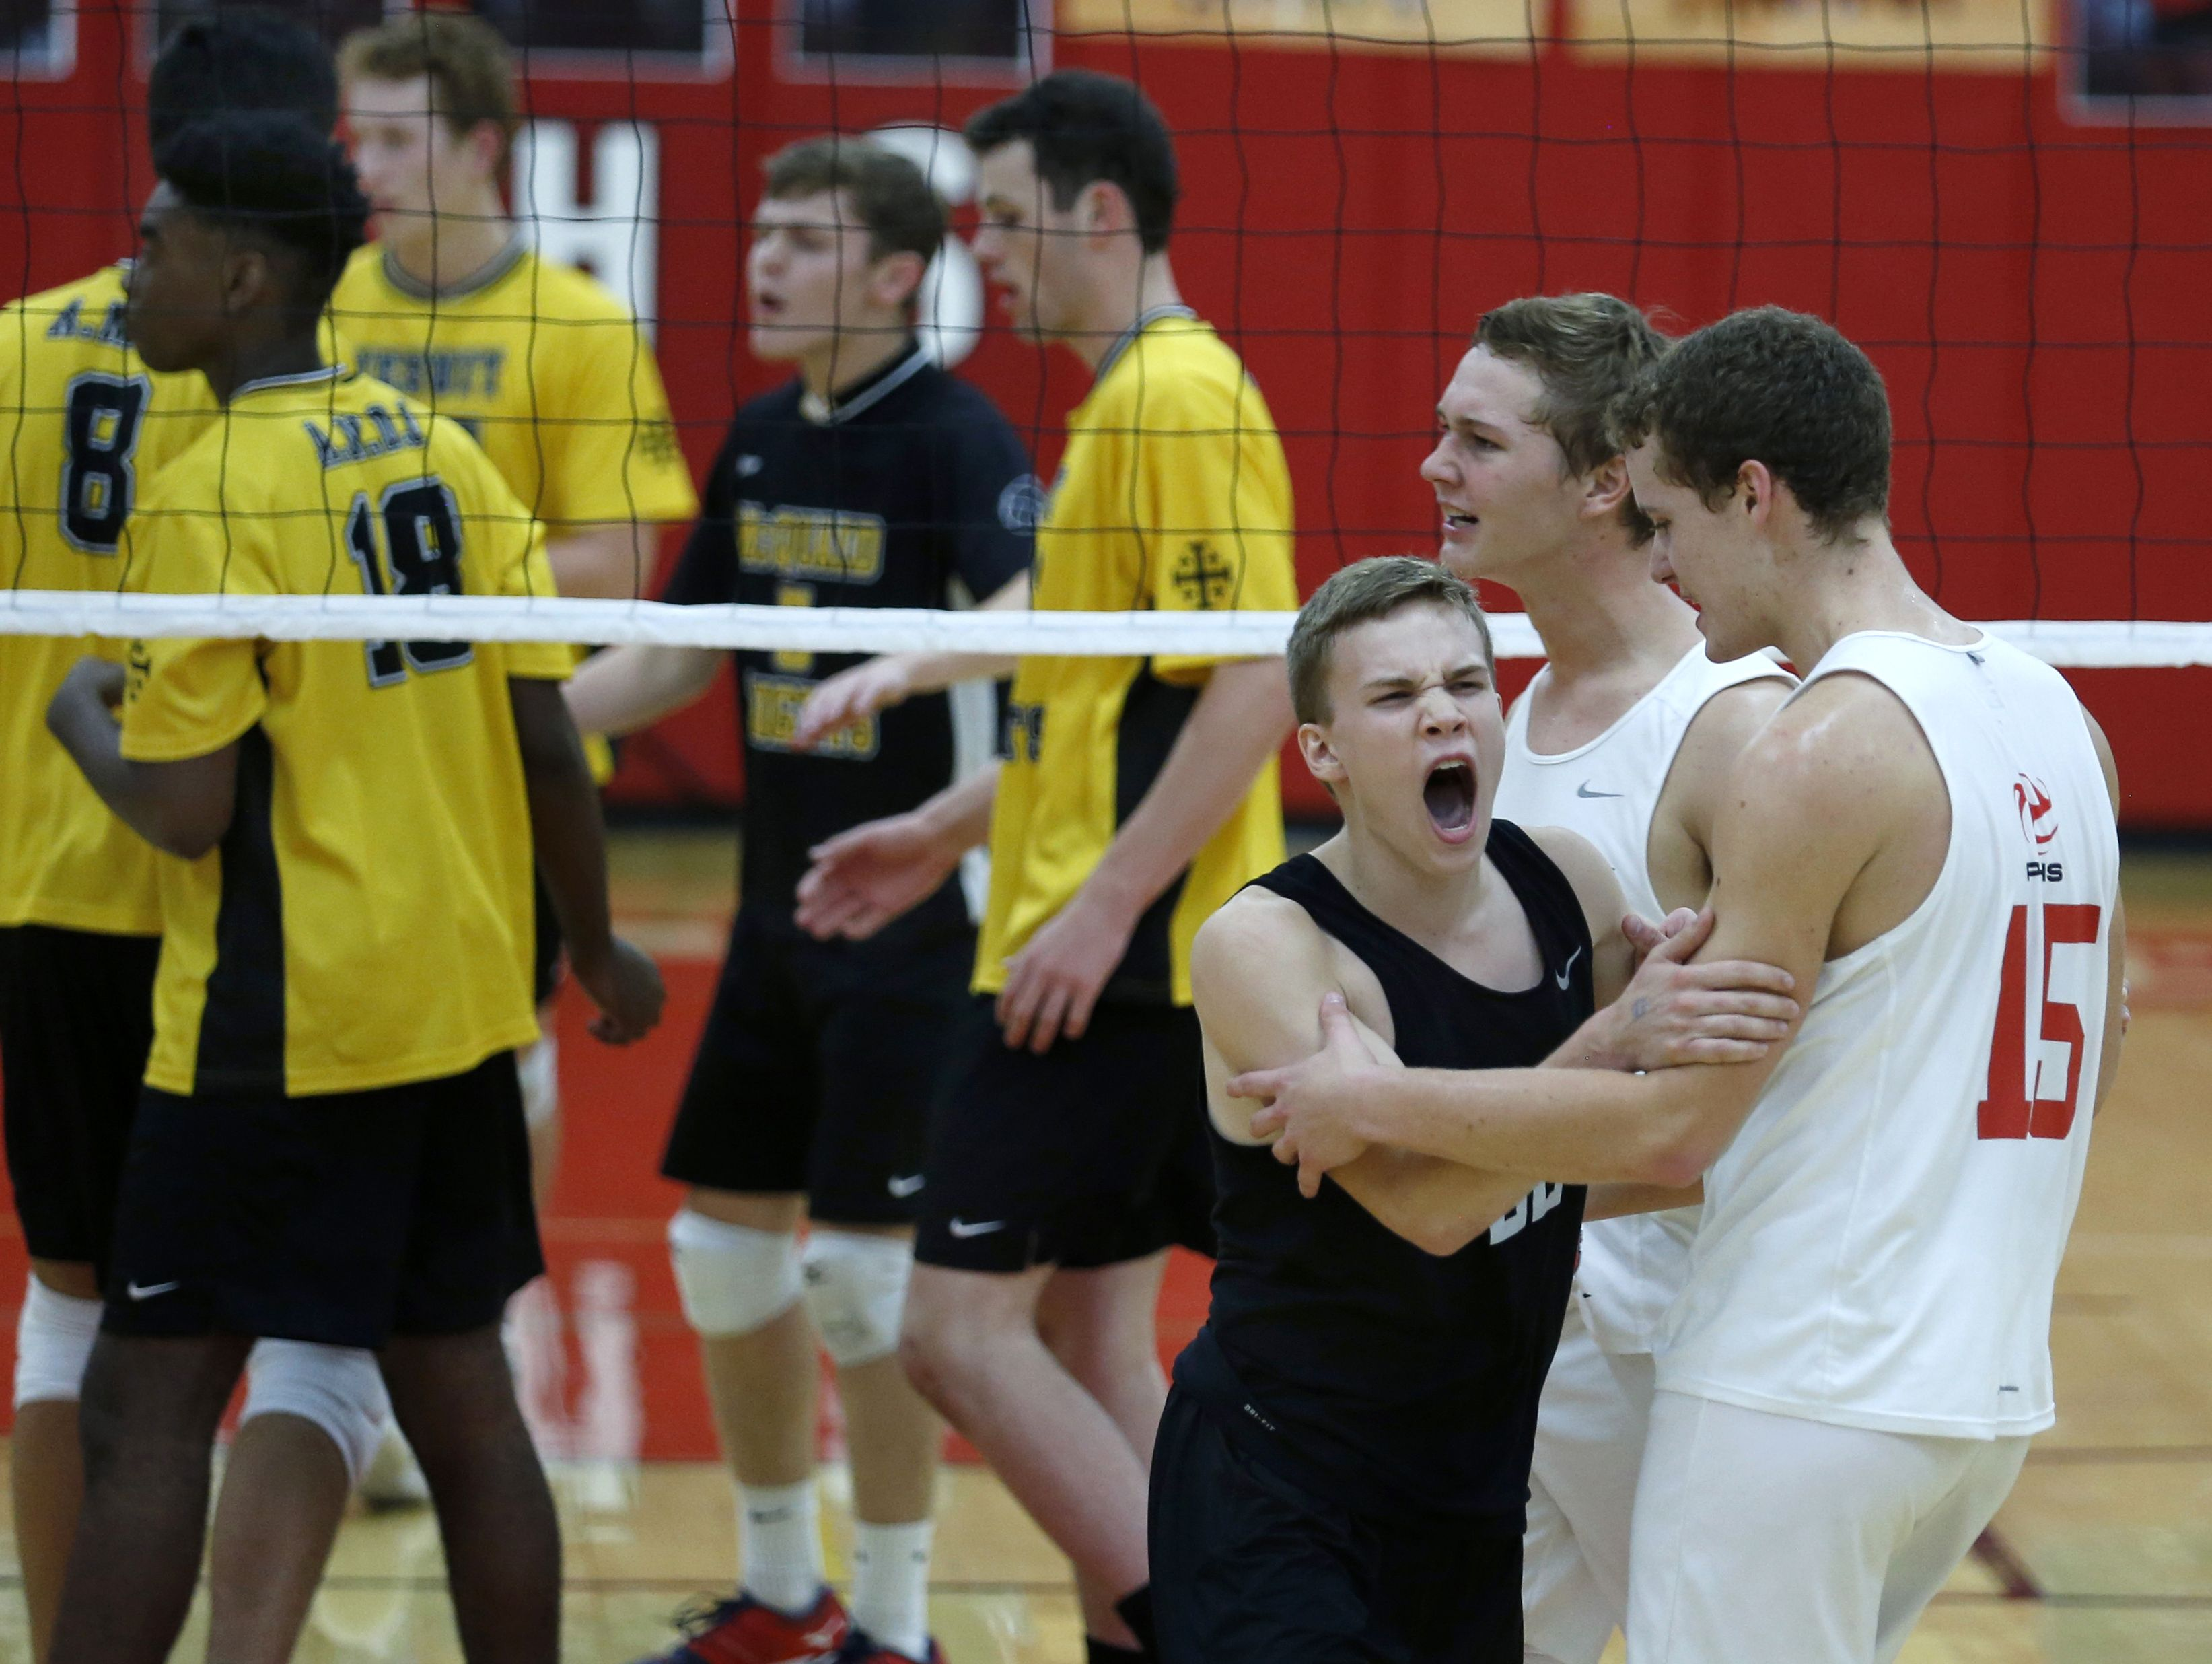 Penfield's Peter Klembczyk shows his excitement against McQuaid in an early season match.